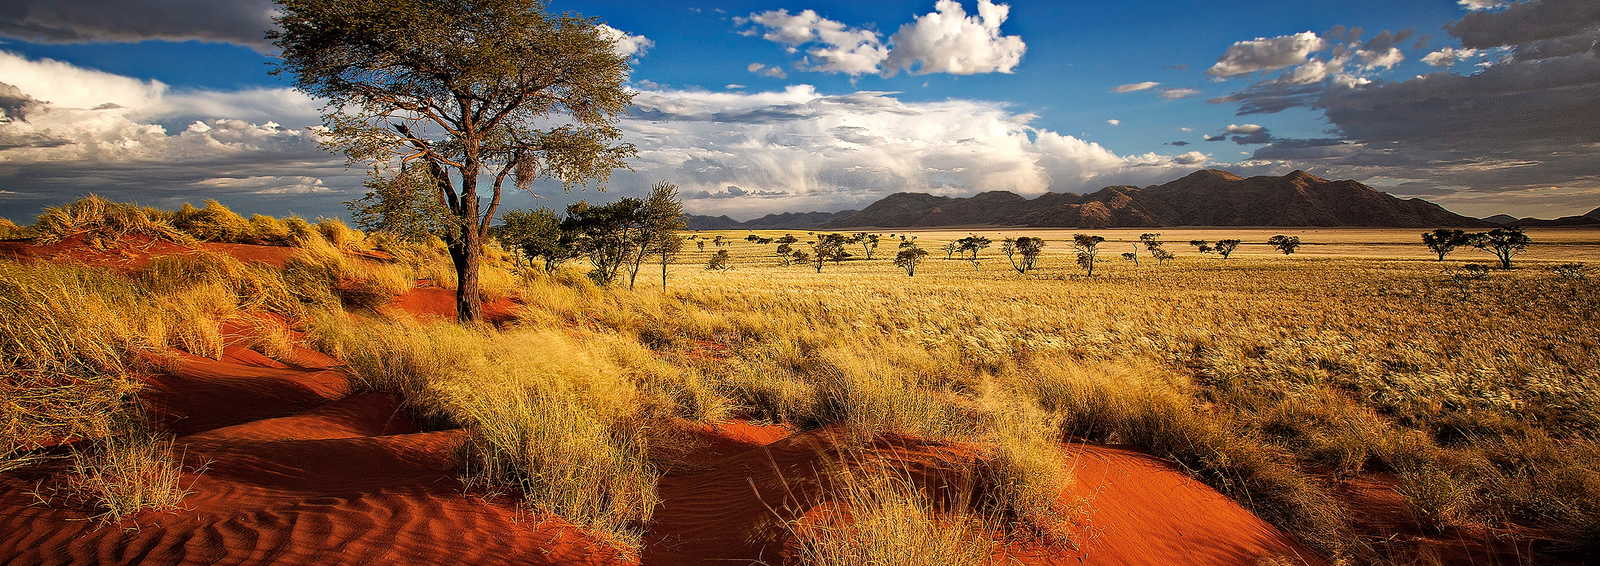 A self-drive tailor made family trip to Namibia